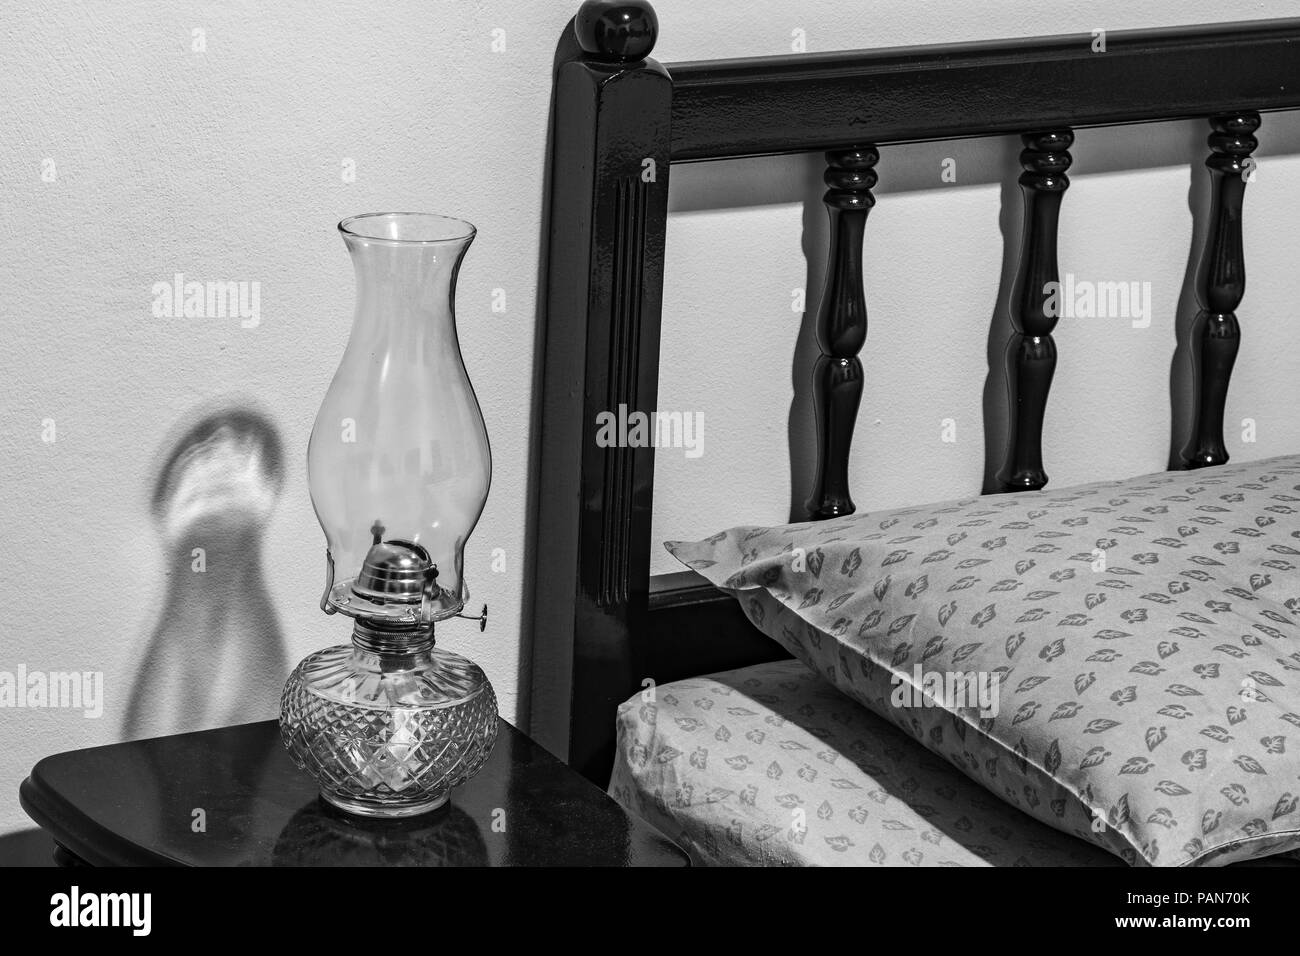 Vintage flat-wick Kerosene Oil Lamp on bedside table, bed headboard, pillow, mattress, bedroom. - Stock Image